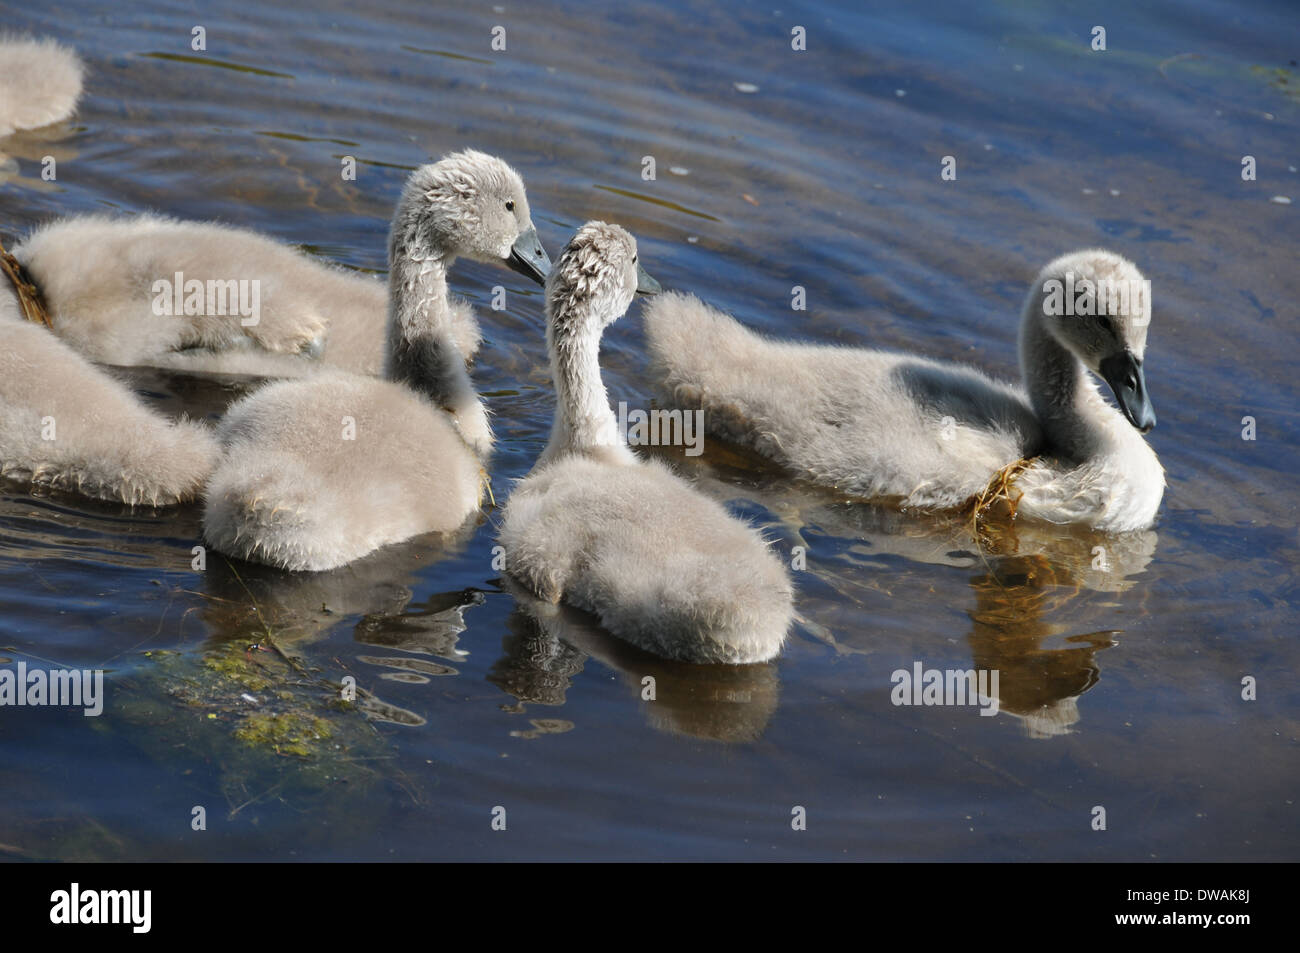 Cygnet Baby Swans Swimming Together on a Lake Stock Photo